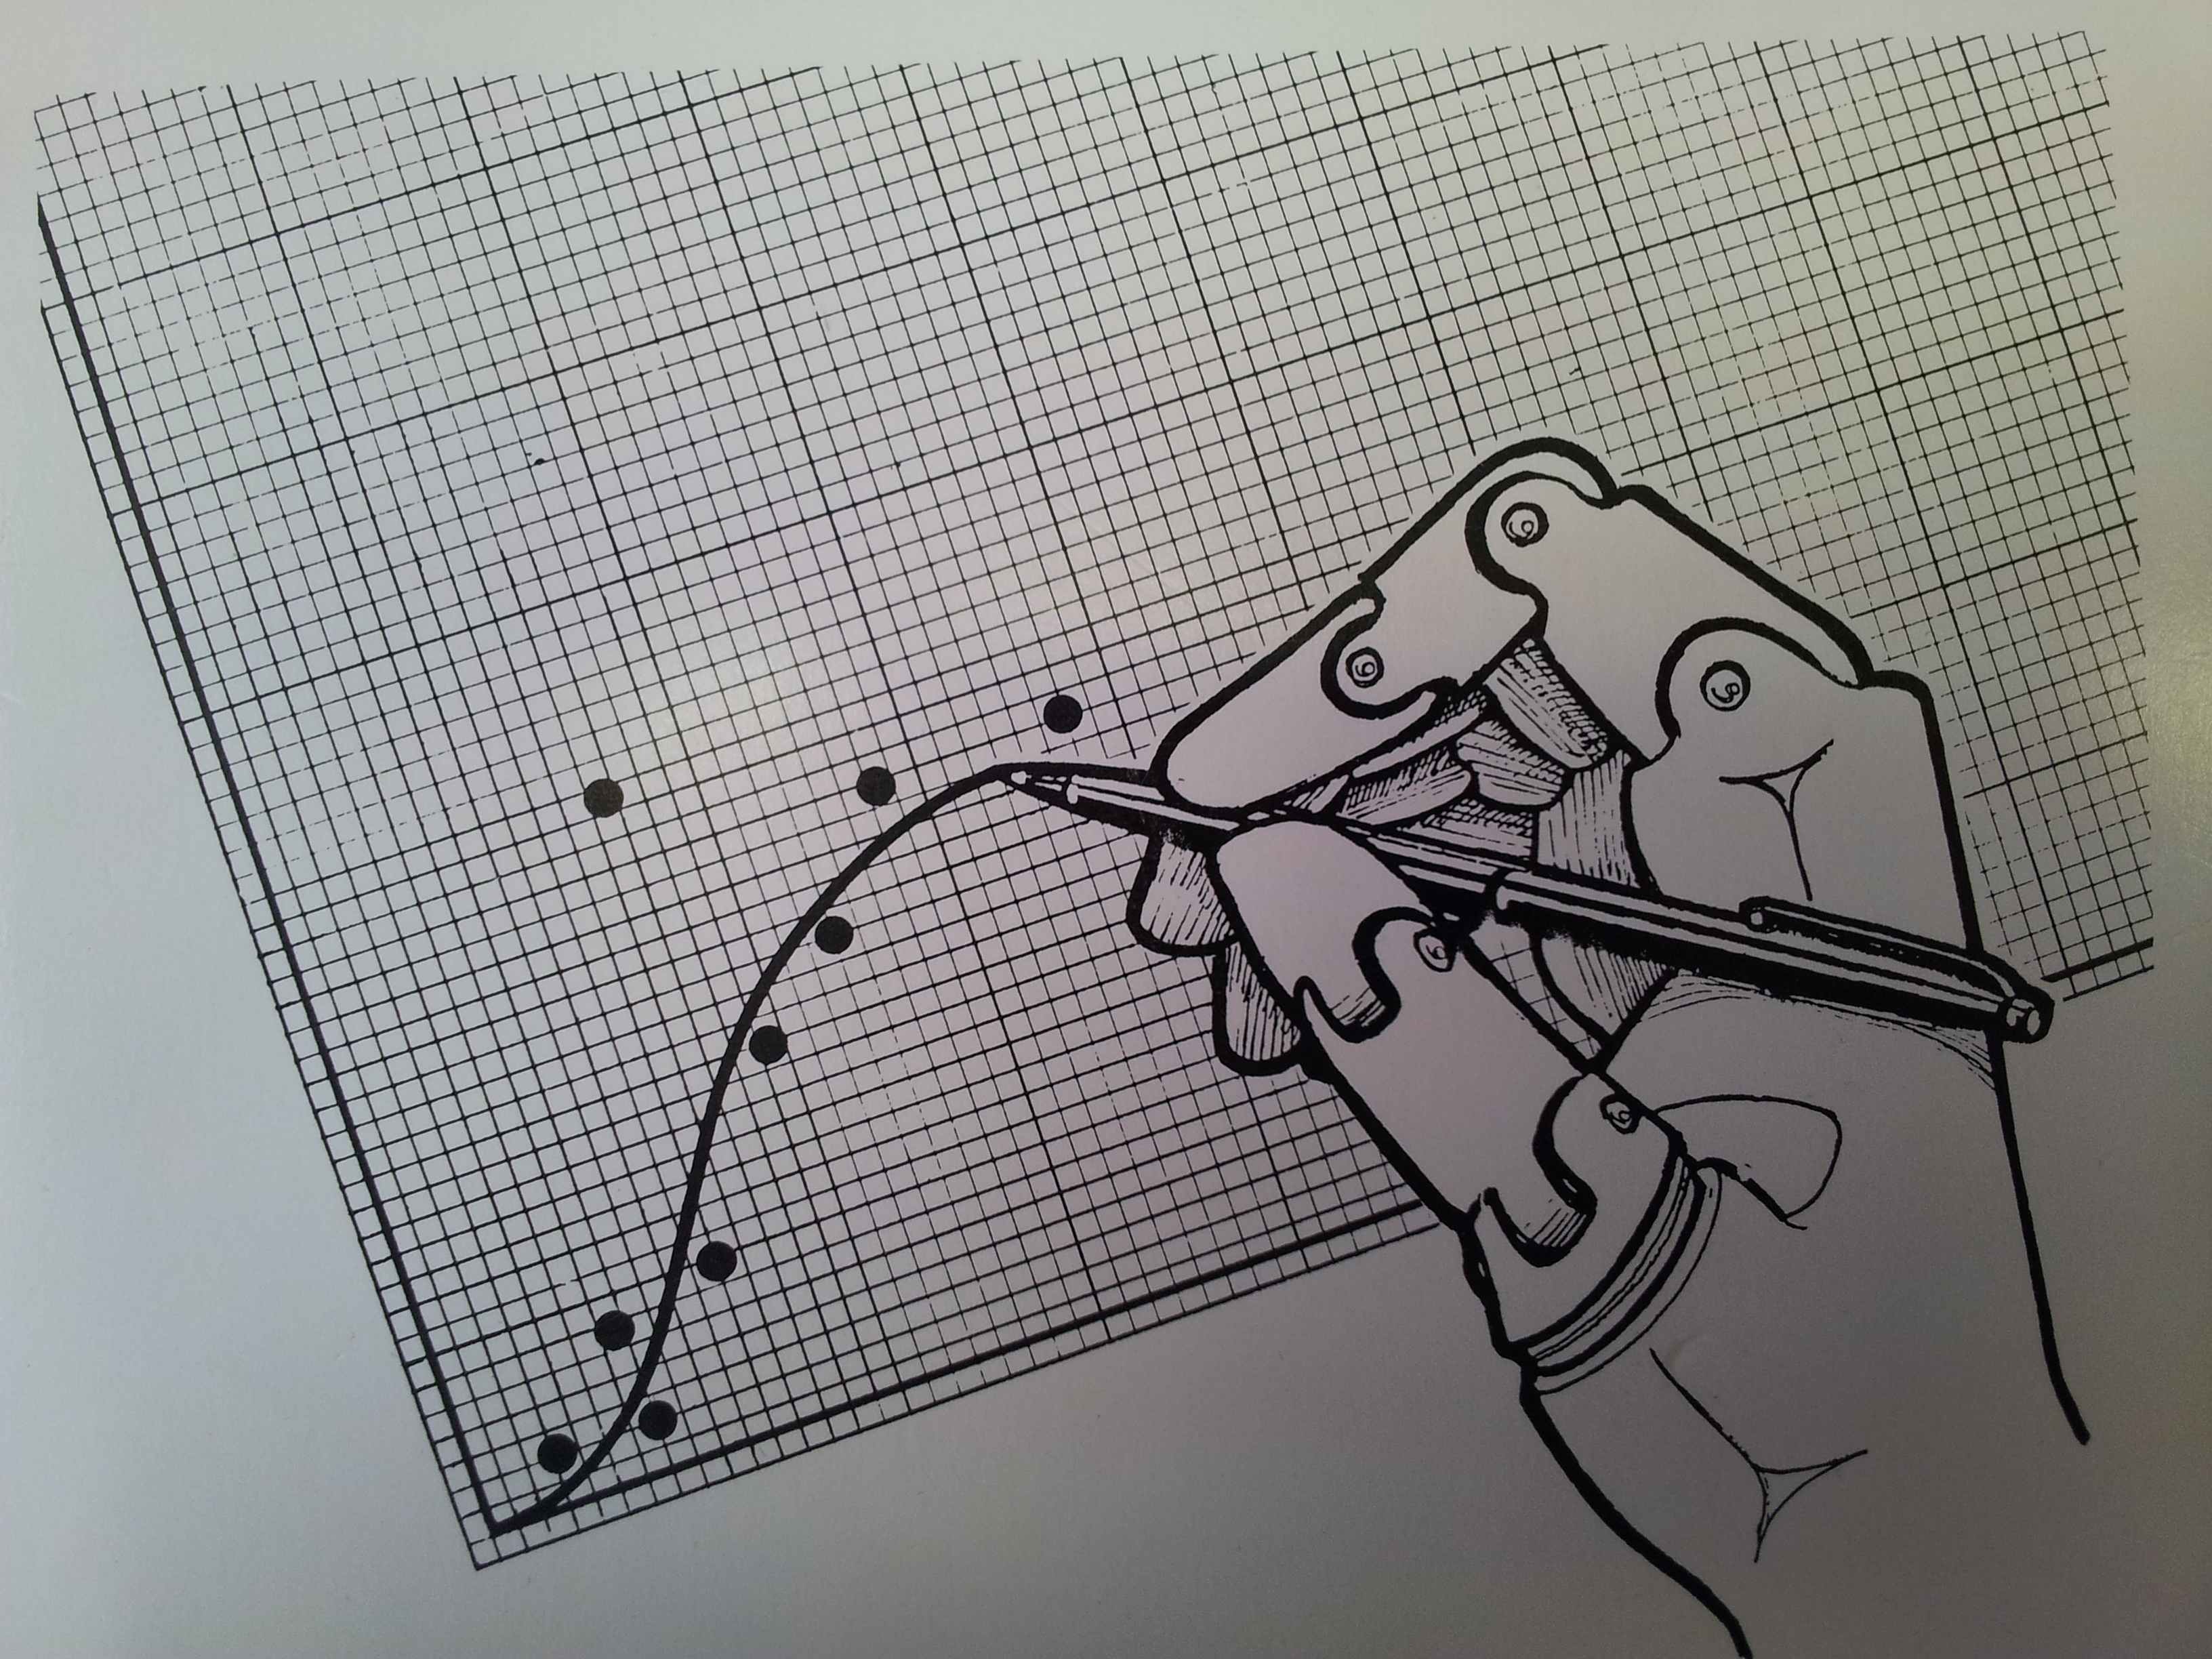 Drawing Line Graphs By Hand : The future of artificial intelligence as imagined in